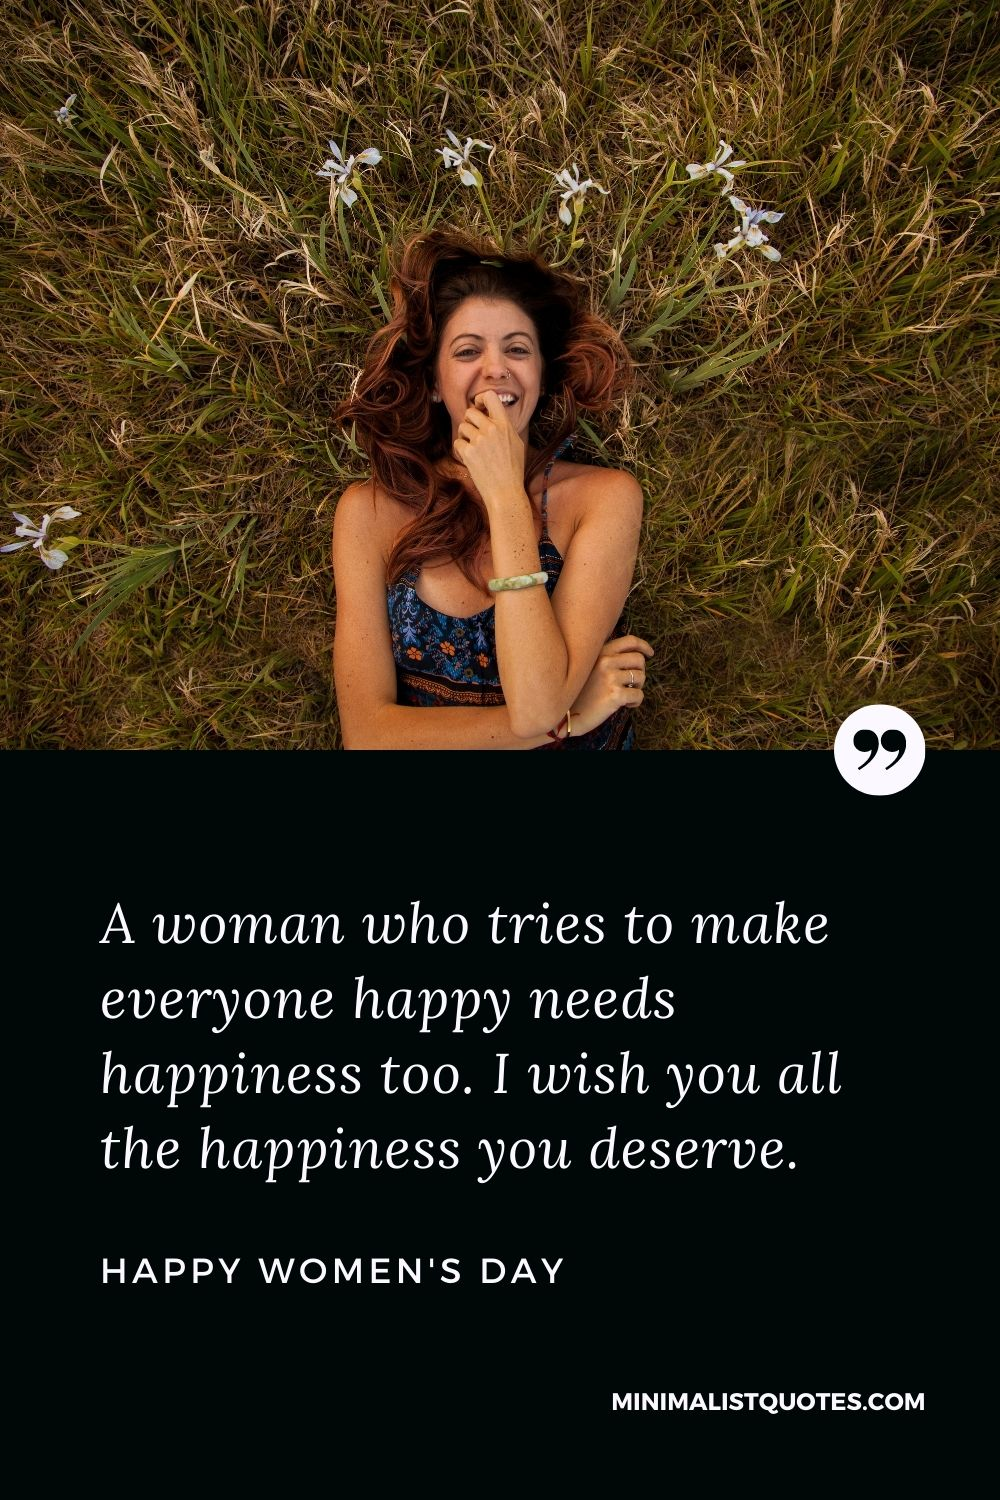 Women's Day Wish & Message With Image: A woman who tries to make everyone happy needs happiness too. I wish you all the happiness you deserve.